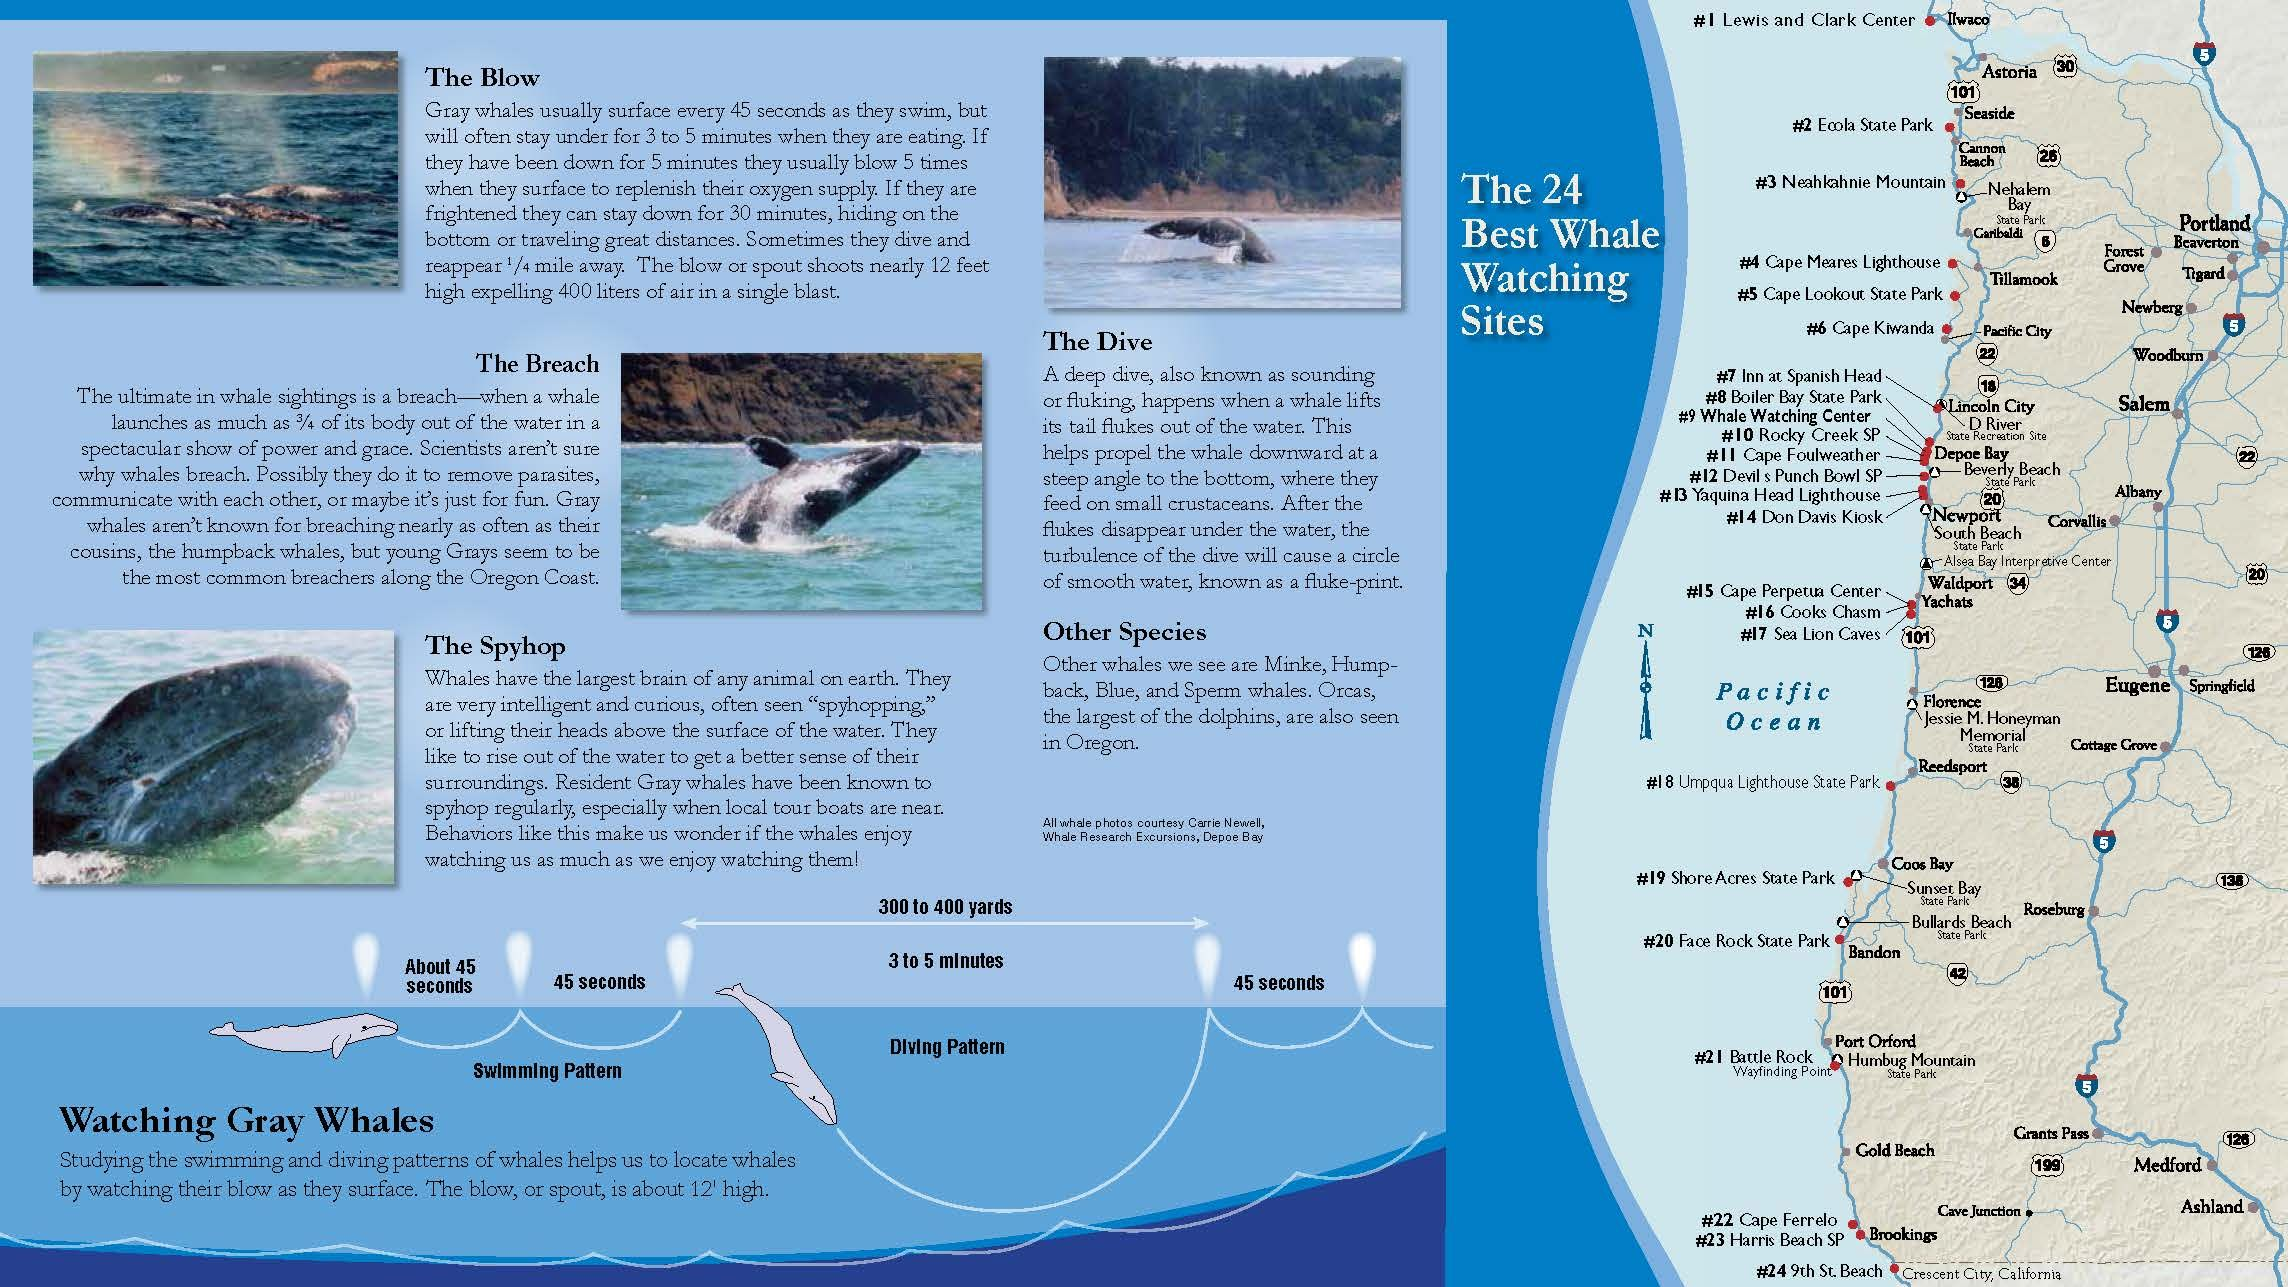 Whale Watching Center, Depoe Bay, by the Oregon Parks and